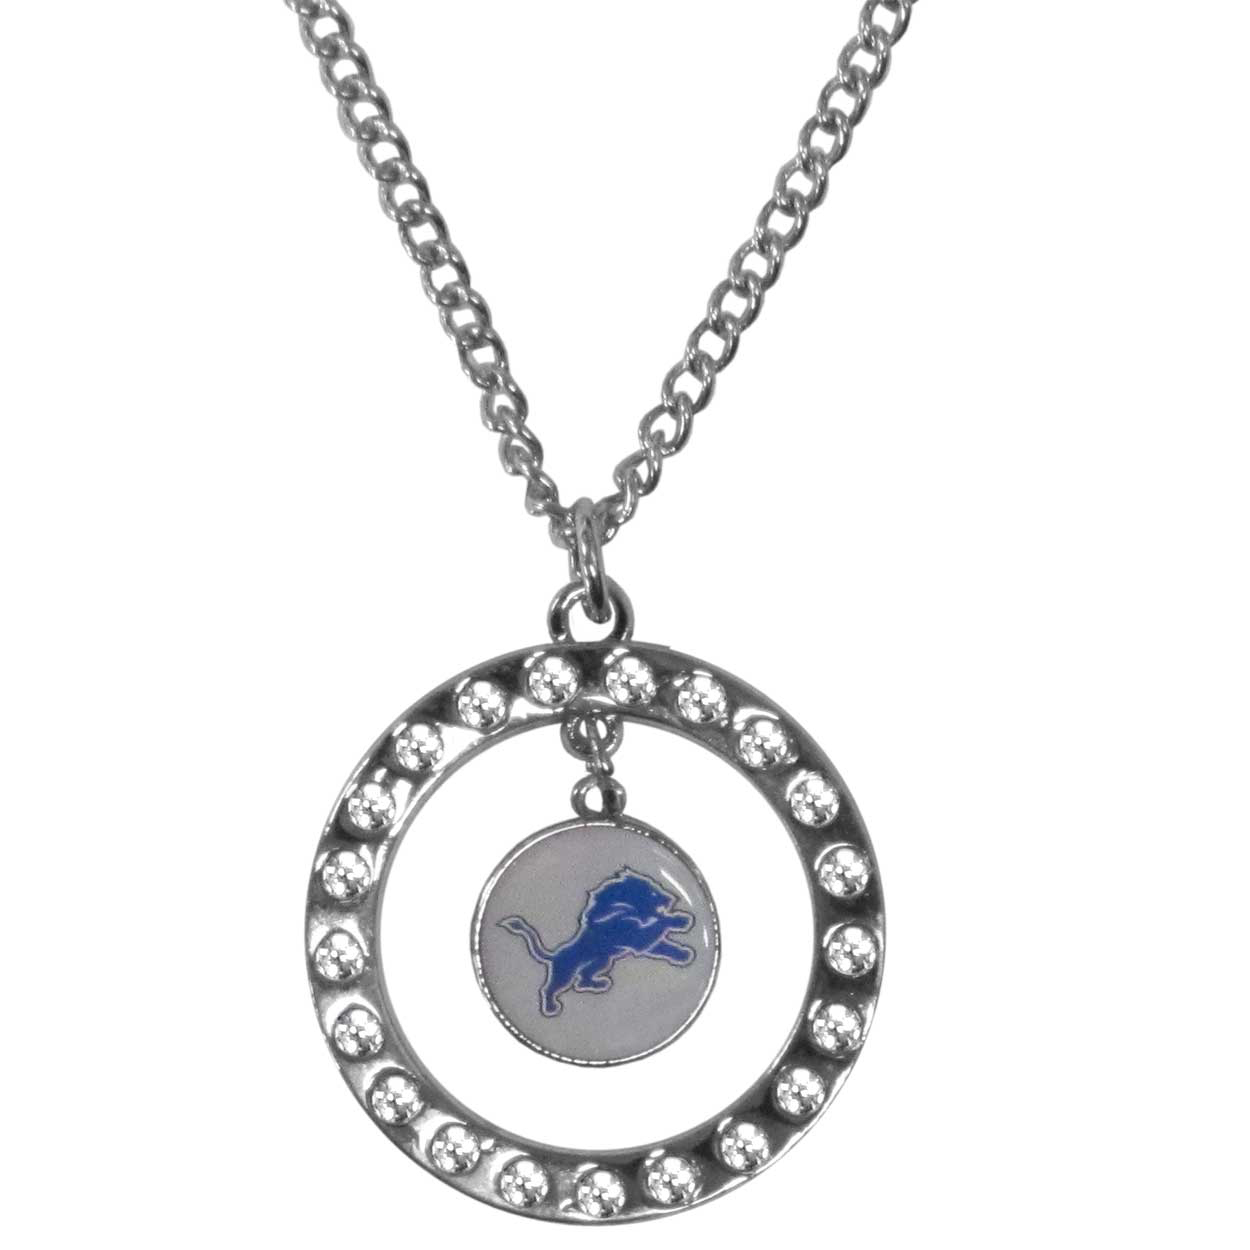 Detroit Lions Rhinestone Hoop Necklace - Our Detroit Lions rhinestone hoop necklace comes on an 18 inch chain and features a hoop covered in rhinestones with a high polish chrome finish and a team logo dangling in the center.